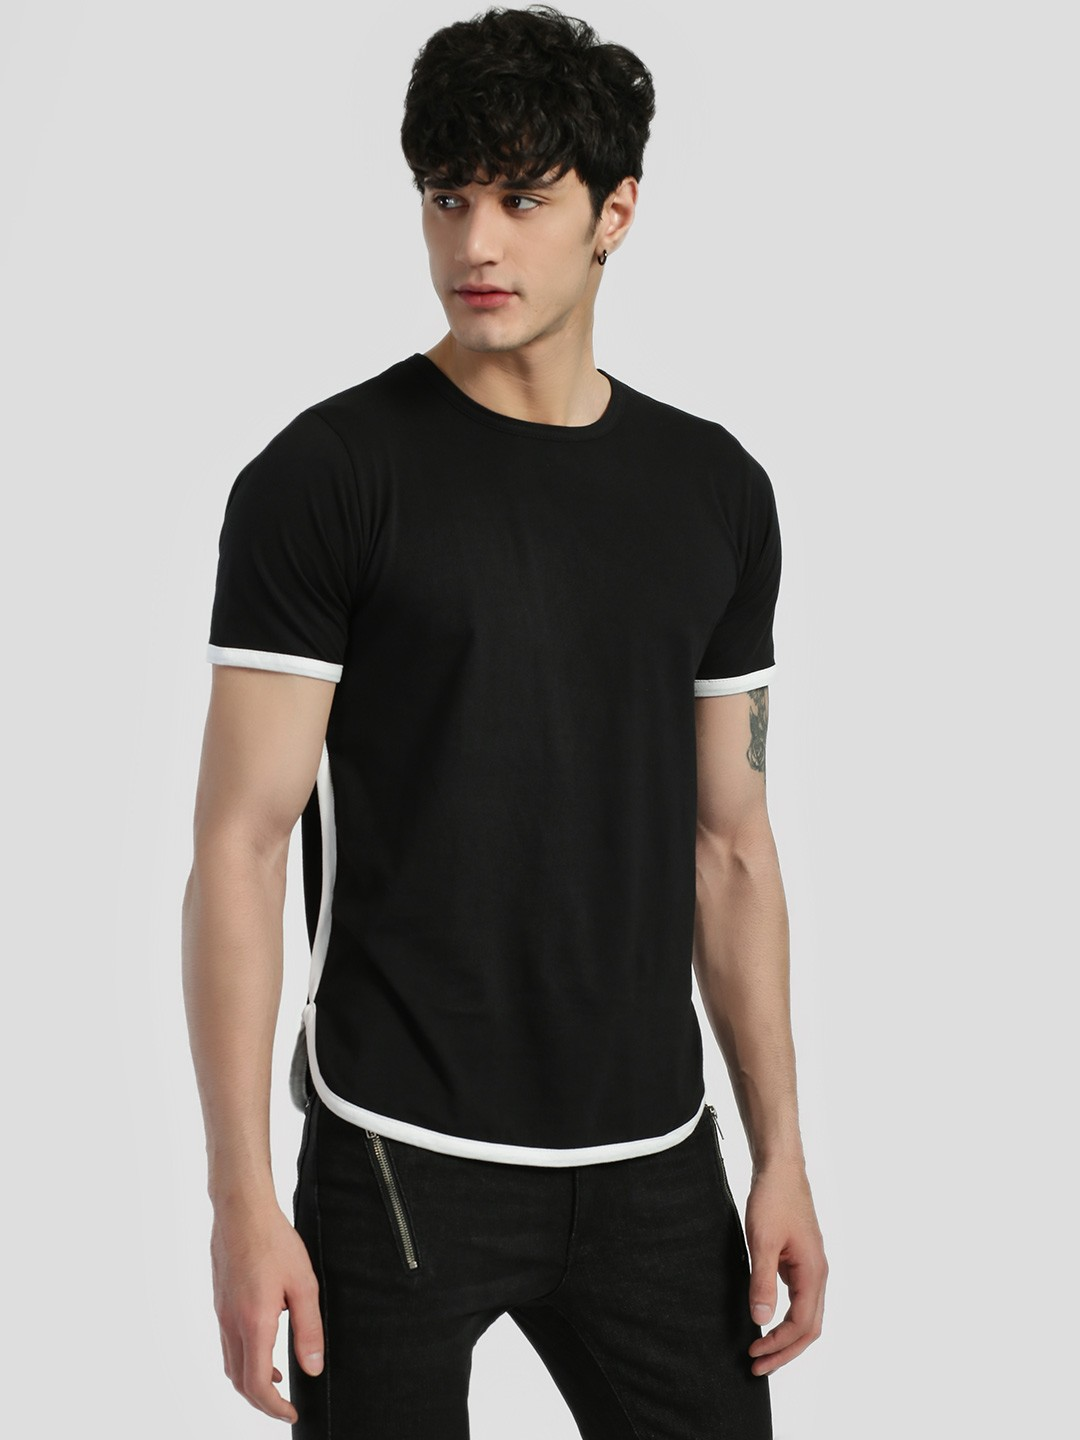 Rigo Black Contrast Piping Curved Hem T-Shirt 1